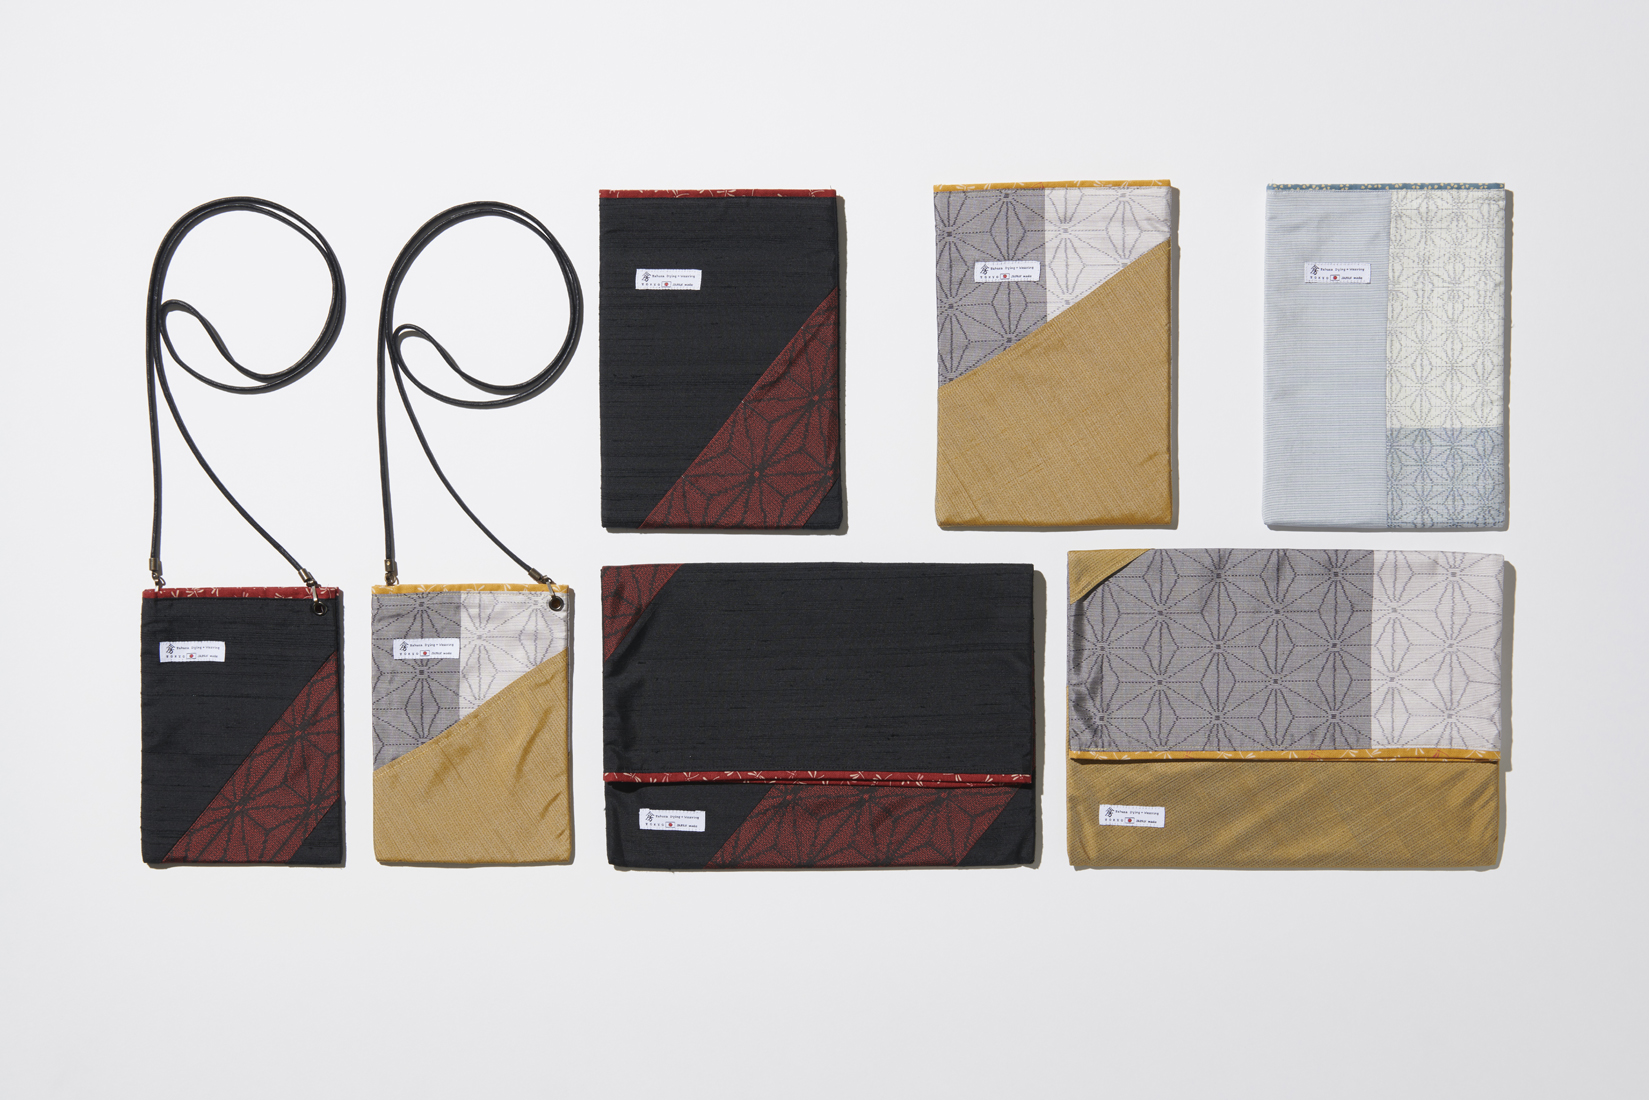 Tablet case, Pouch, Clutch bag